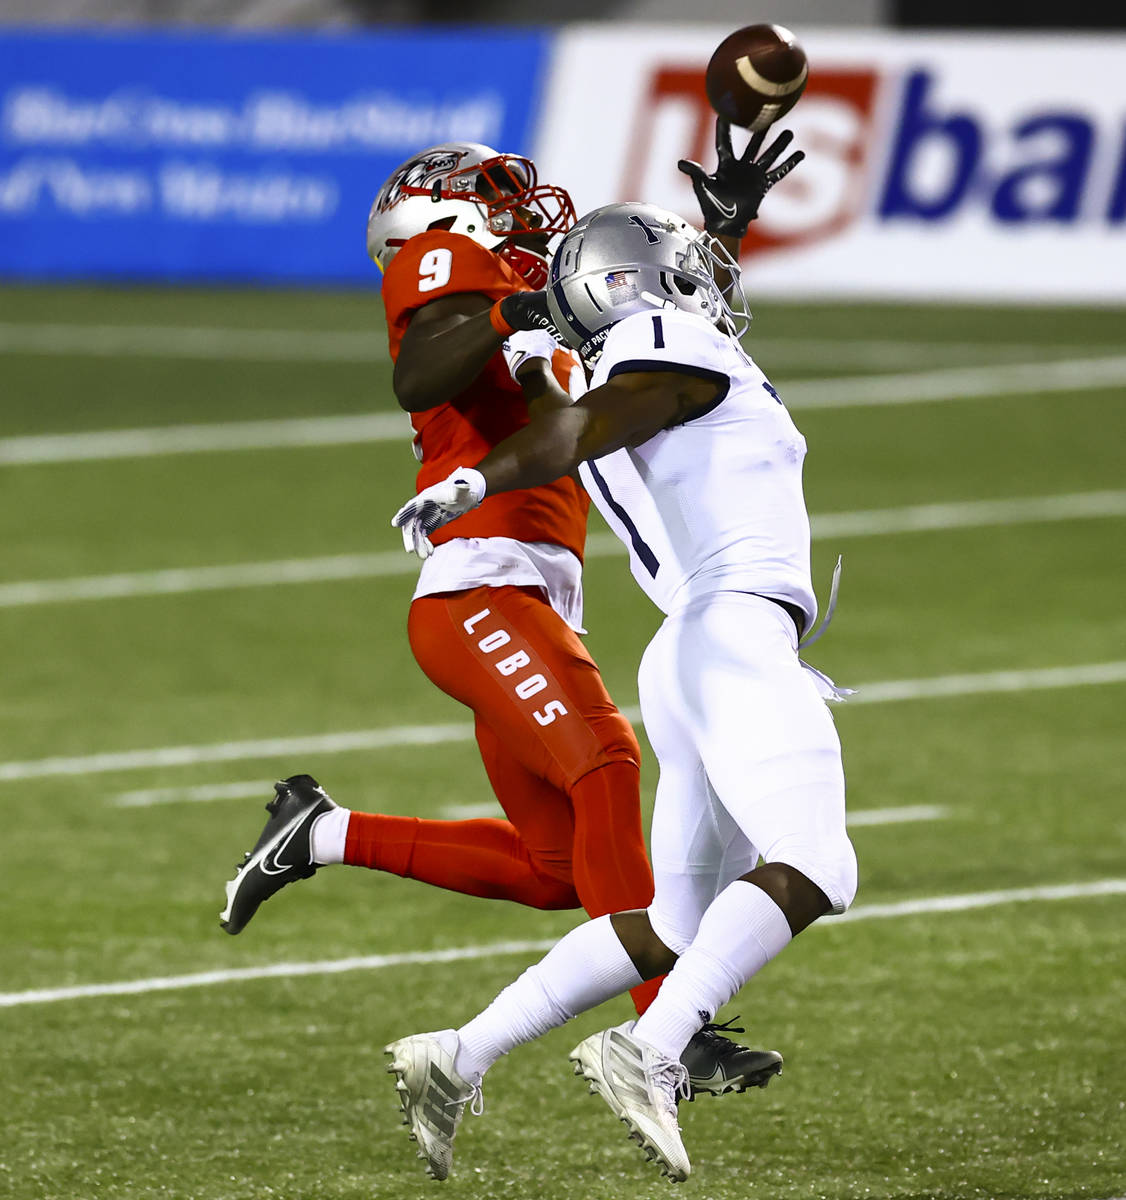 New Mexico Lobos safety Jerrick Reed II (9) intercepts a pass intended for UNR Wolf Pack wide r ...